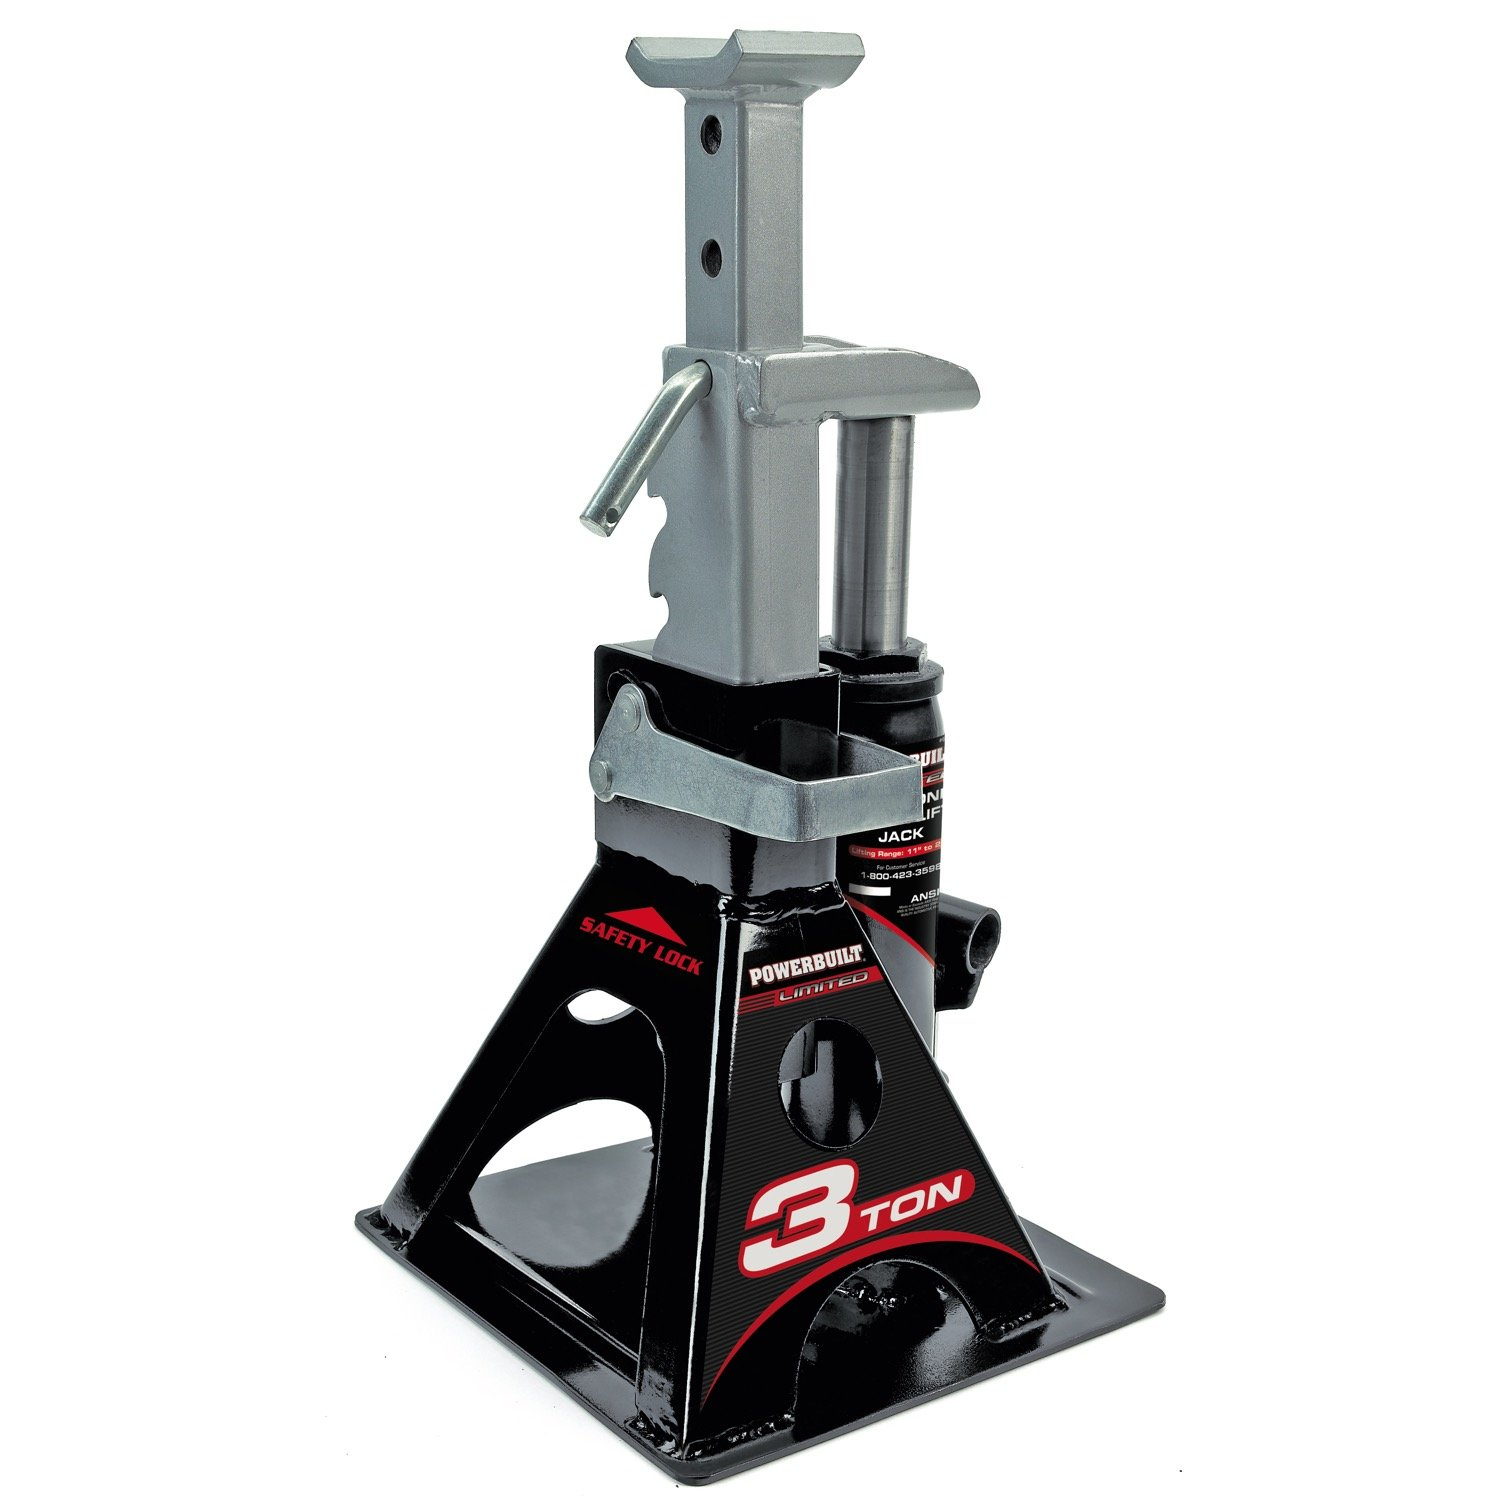 Powerbuilt 640912 All-In-One 3-Ton Bottle Jack with Jack Stand by Alltrade (Image #2)